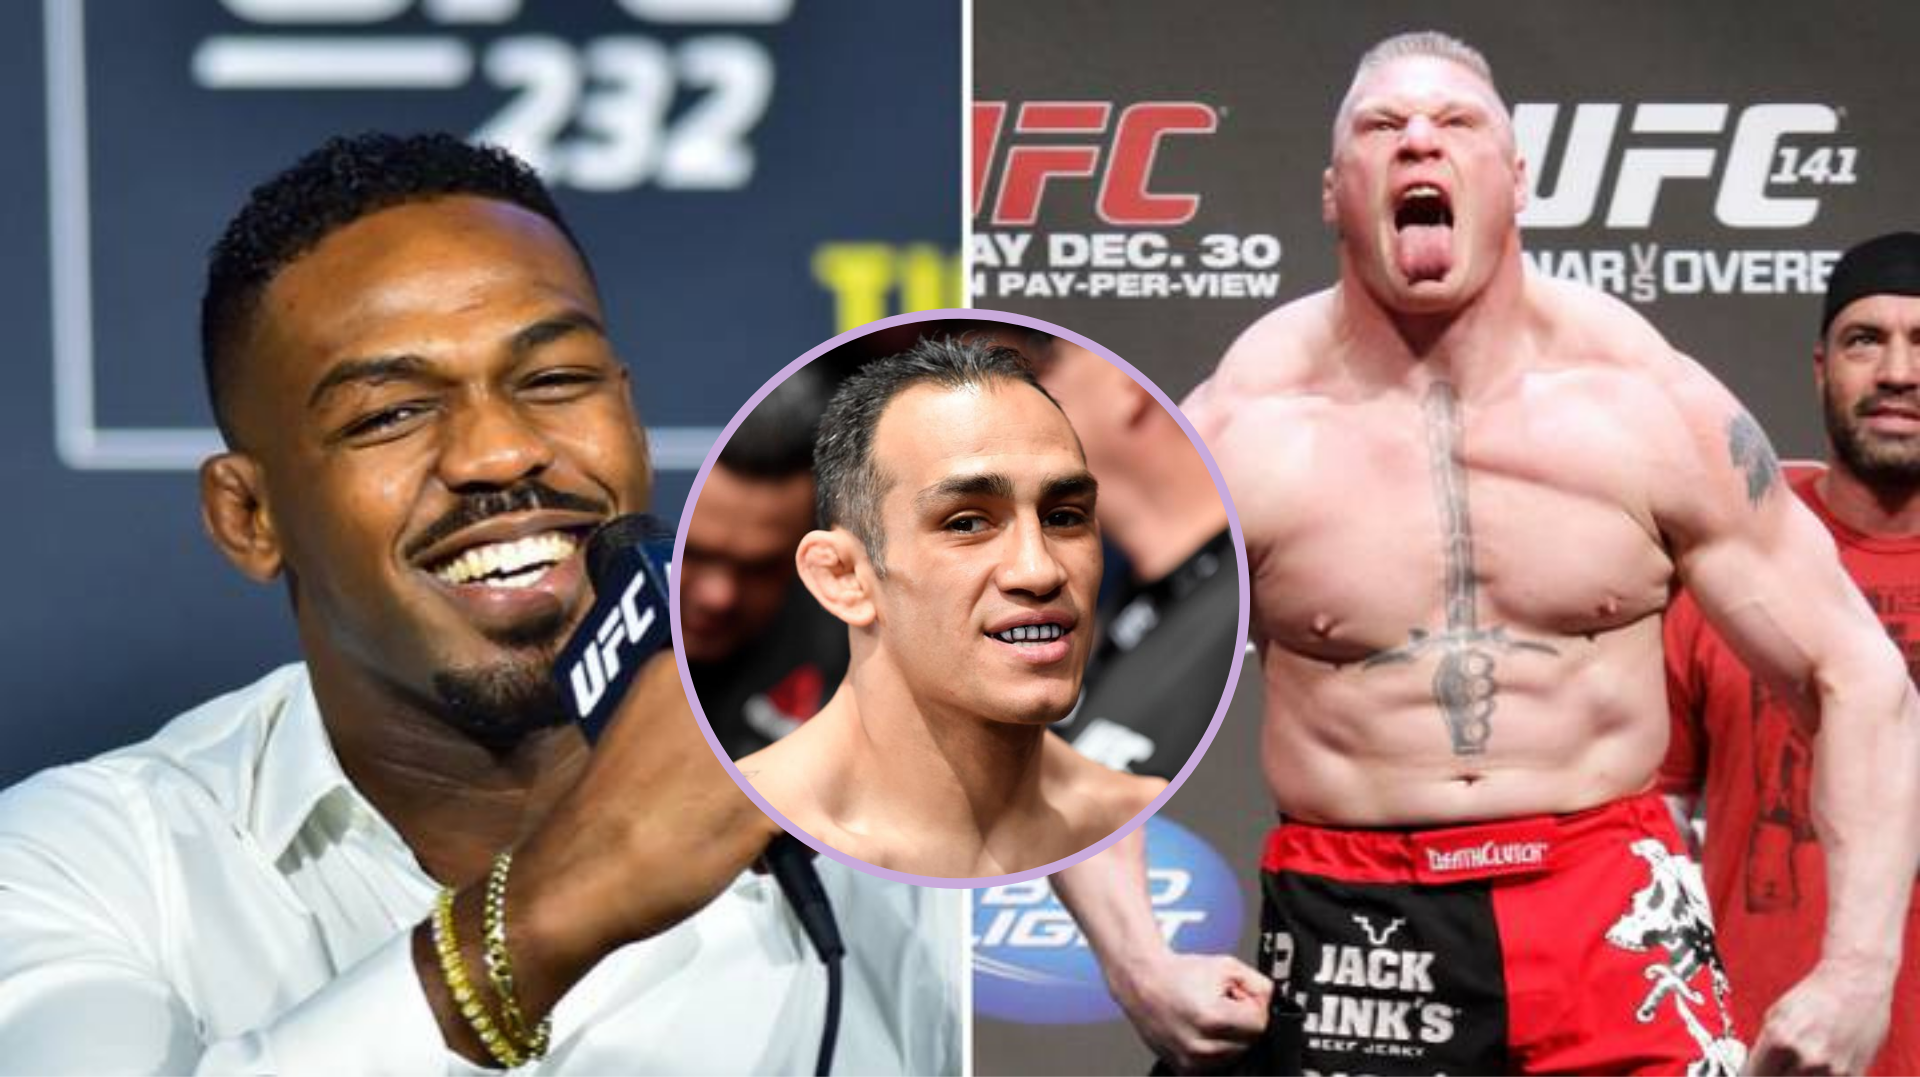 Tony Ferguson willing to help Lesnar prepare for Jones fight - Jones